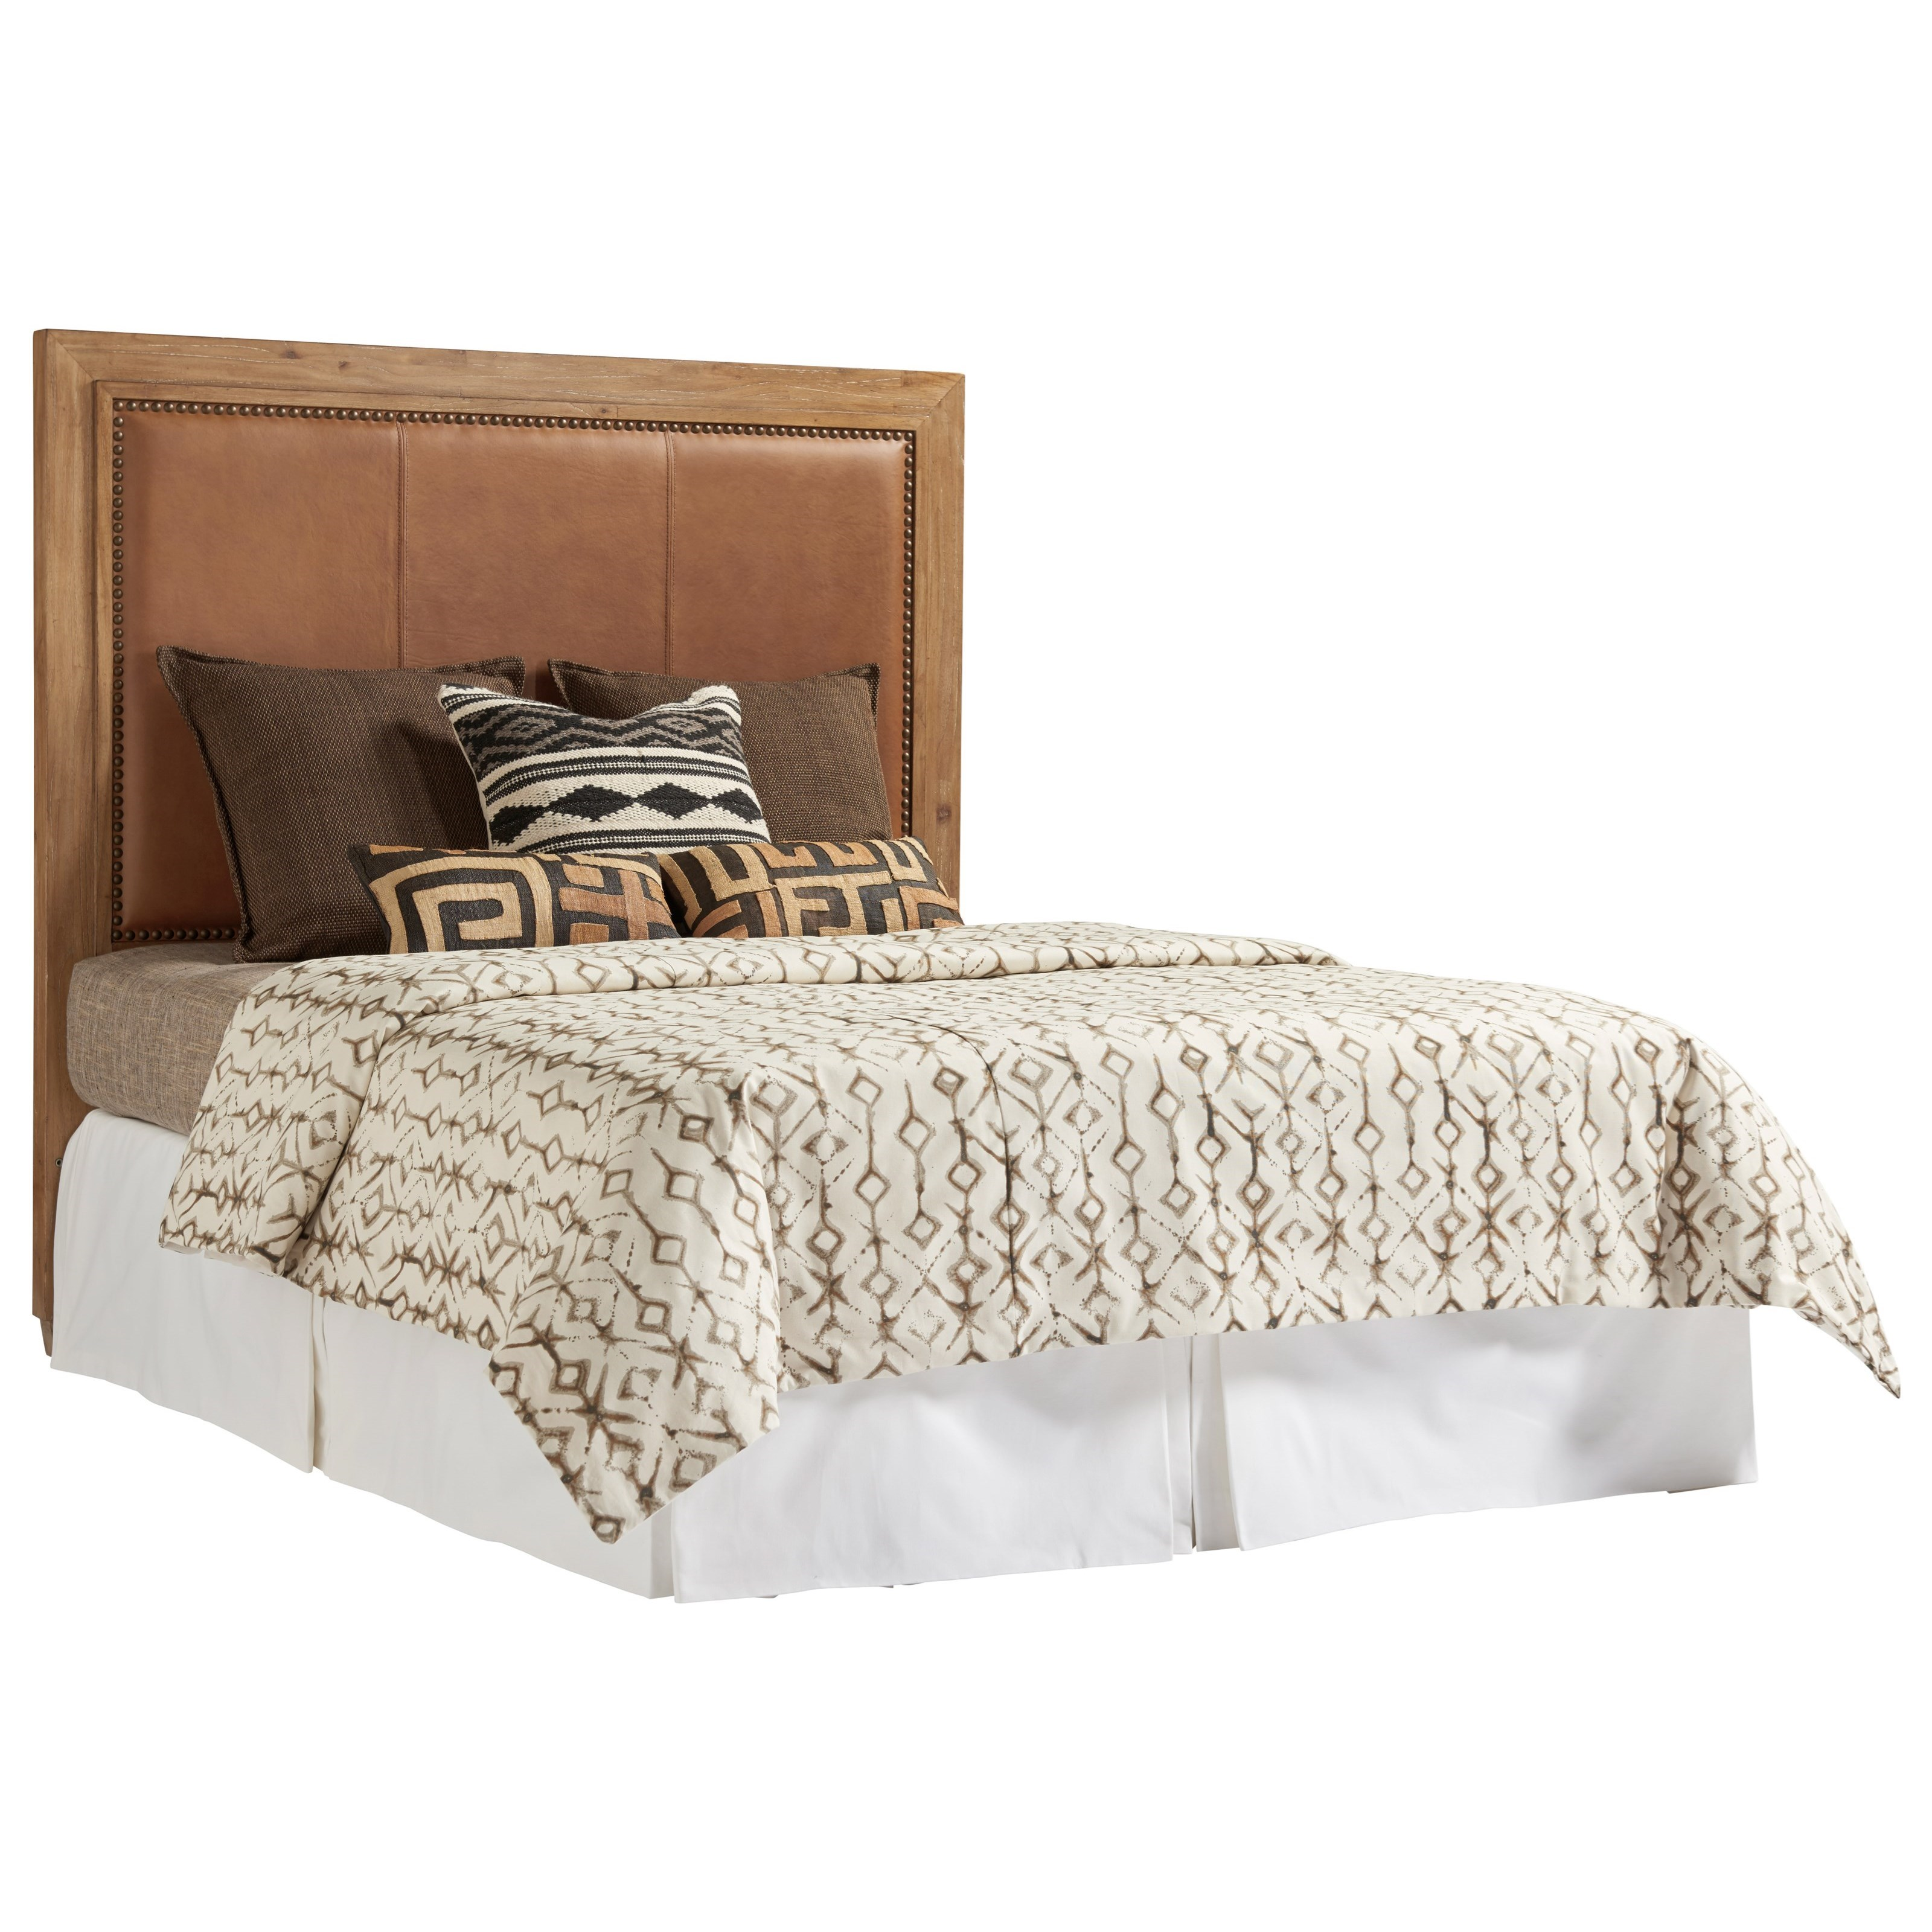 Tommy Bahama Home Los Altos 566 145hb Antilles California King Size Headboard With Rustic Stitched Leather Insert And Nailheads Esprit Decor Home Furnishings Headboards